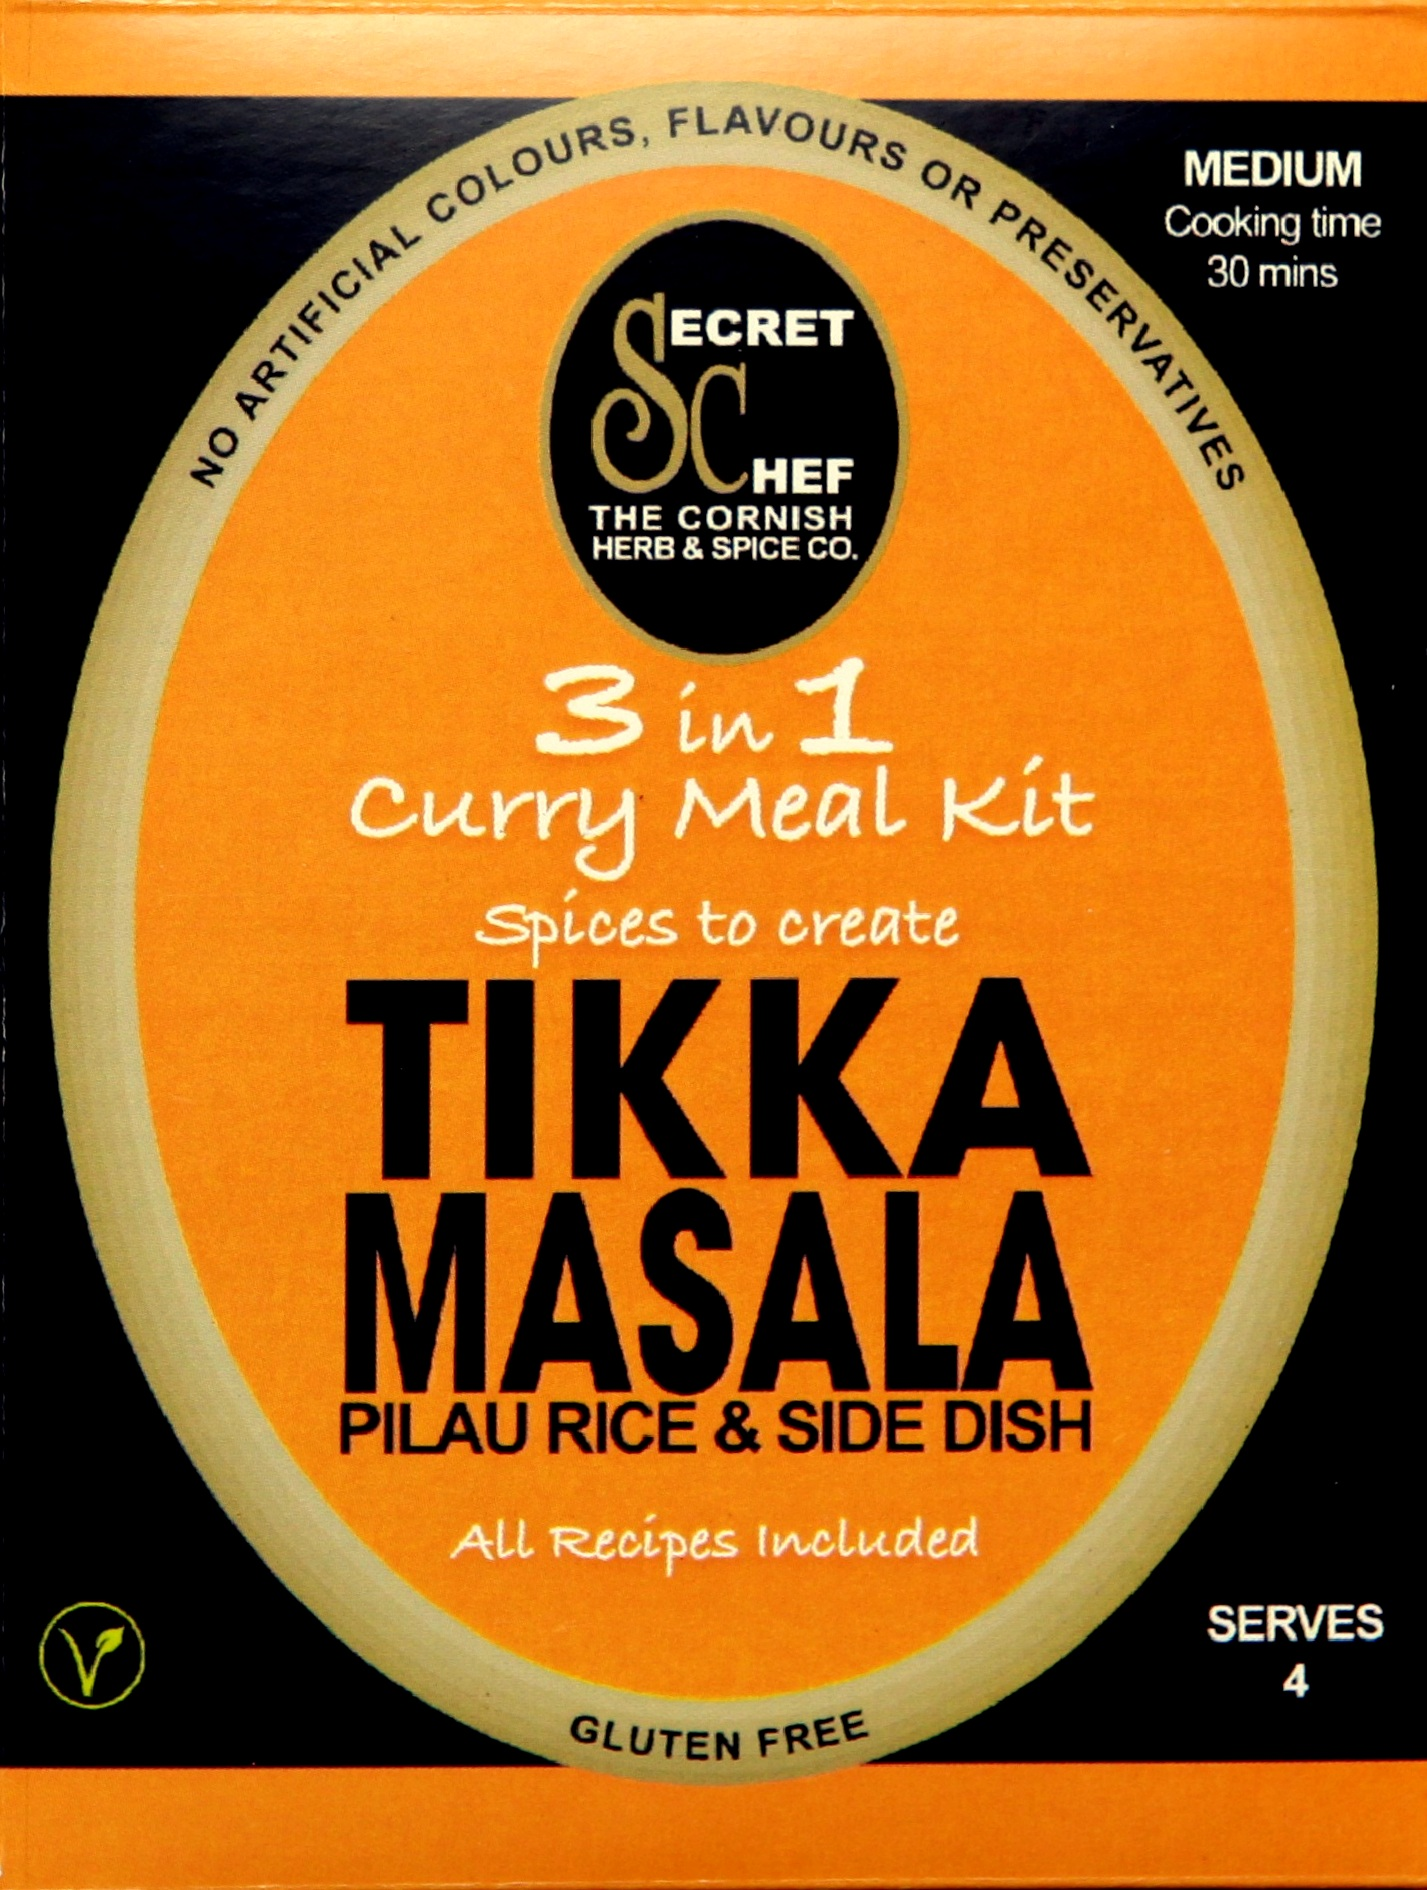 Tikka Masala Curry Meal Kit